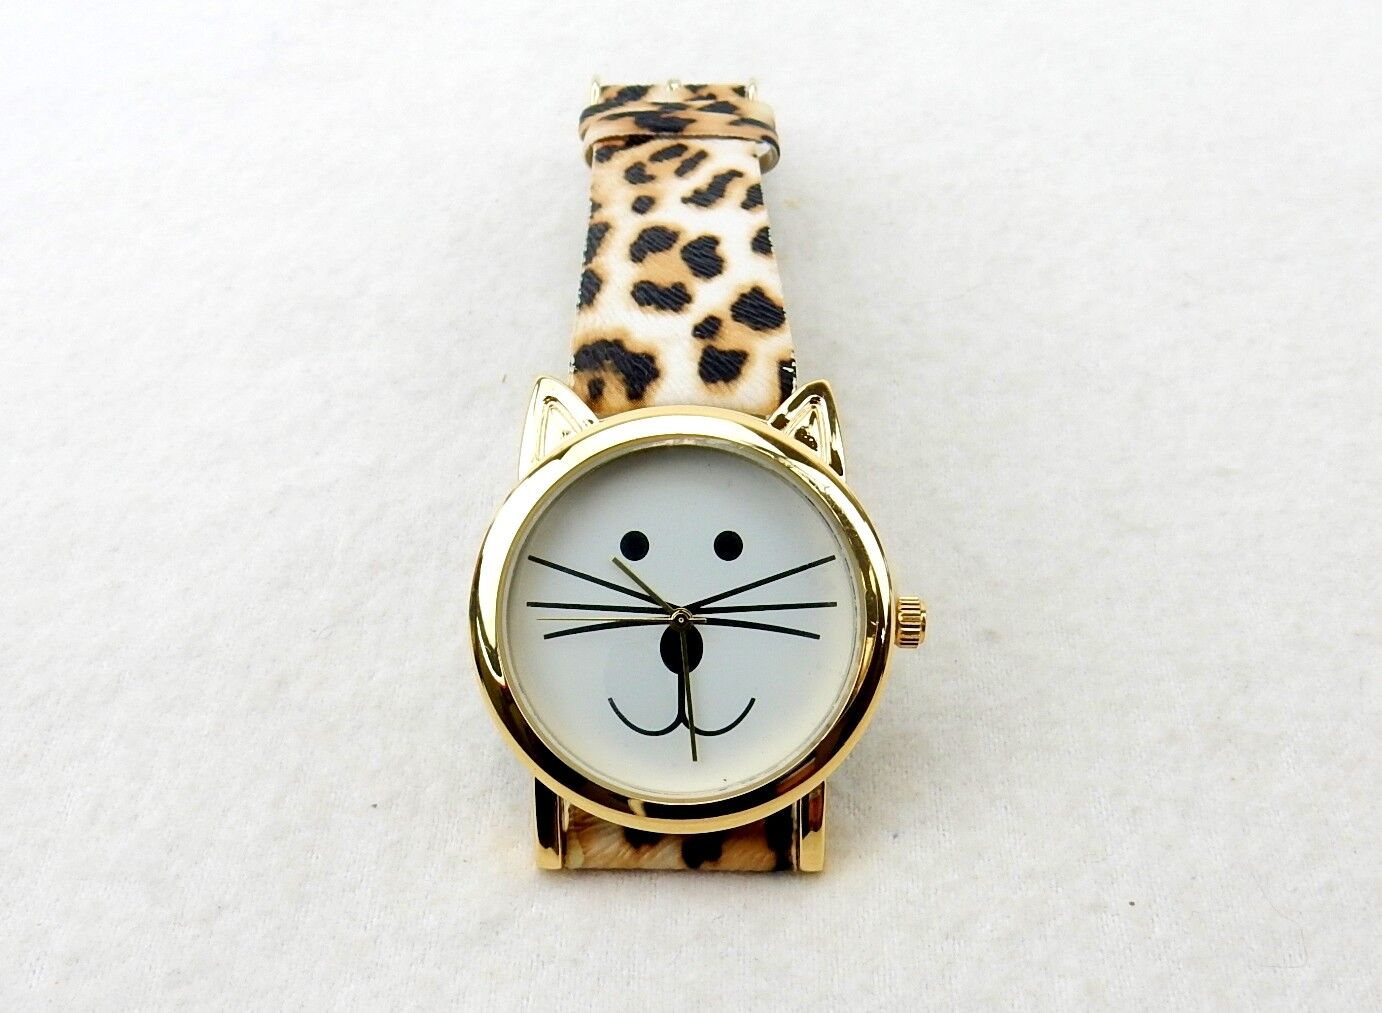 Cat Face Wrist Watch, Gold Tone Case, Faux Leather Animal Print Band, #L8100